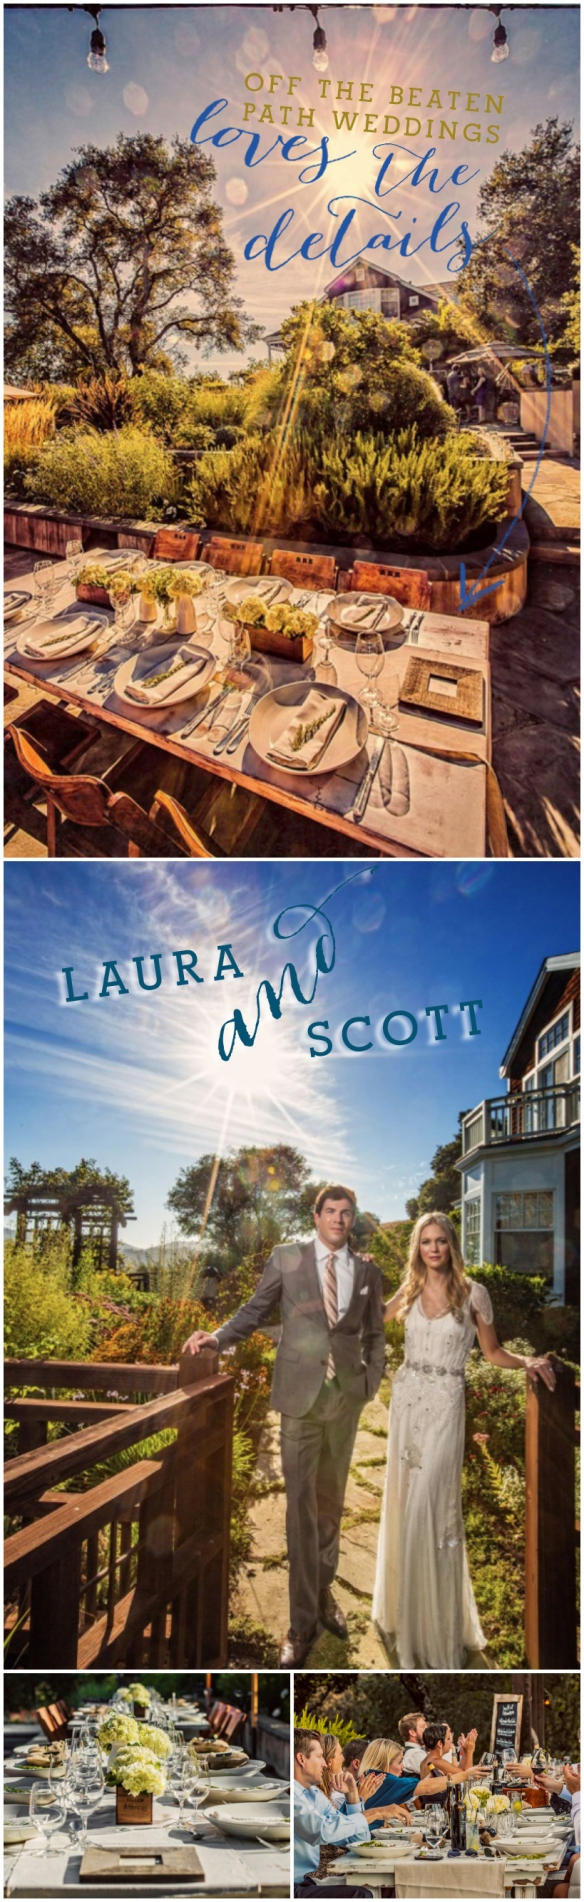 Laura and Scott